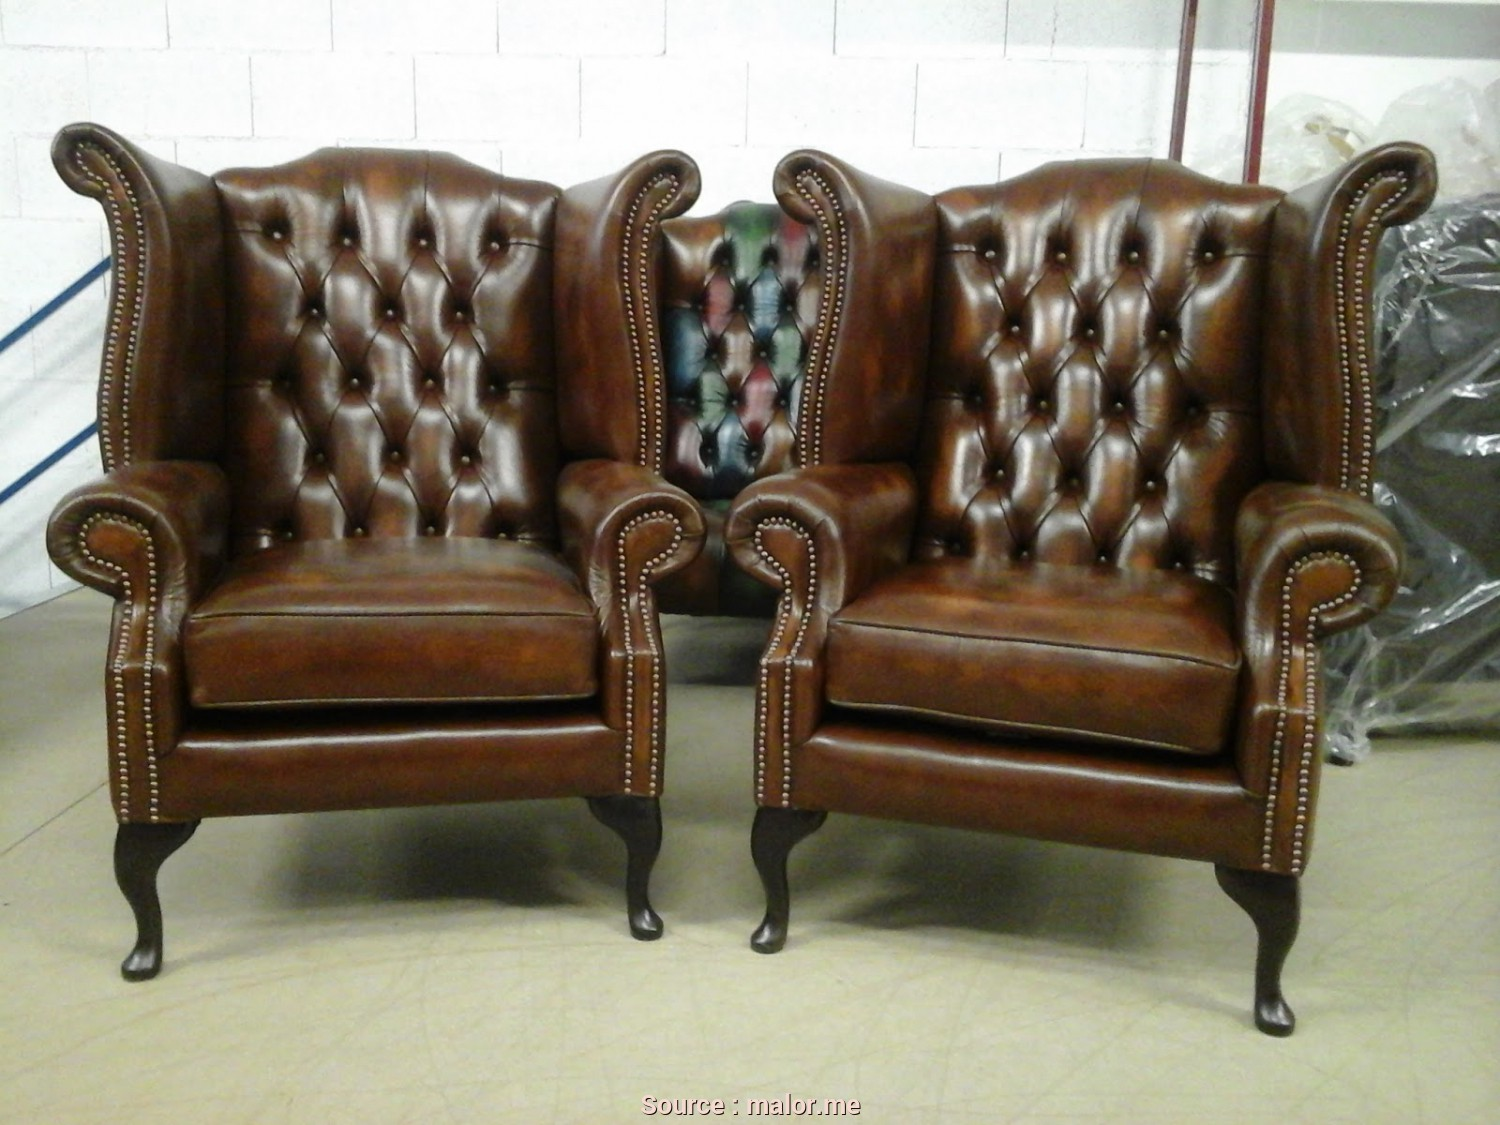 Divani Chesterfield Usati Milano Loveable 6 Poltrone In Pelle Vintage Usate Jake Vintage